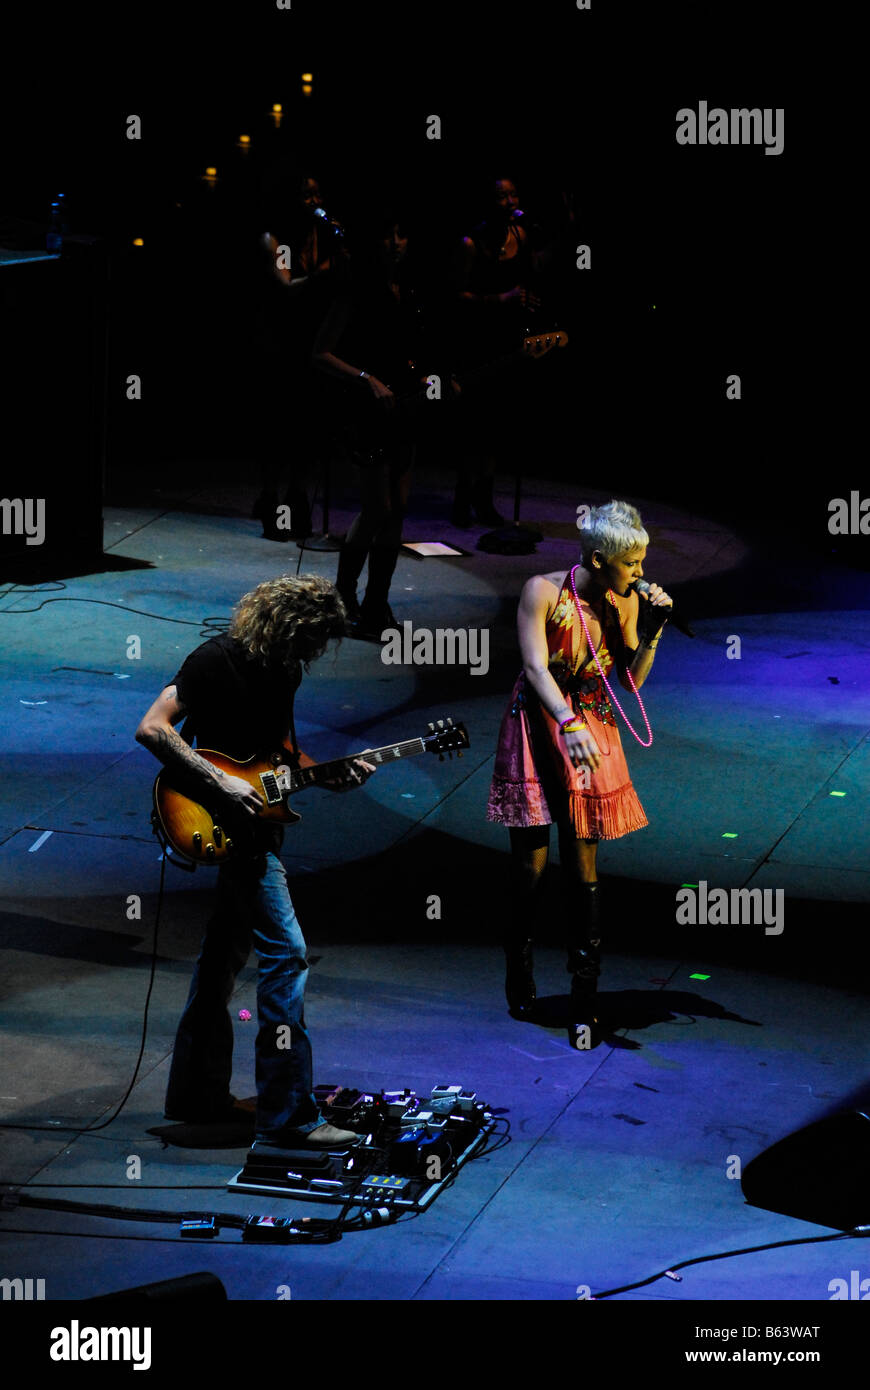 Pink, live concert at Roma Music Auditorium, Italy, 25/07/2007 - Stock Image